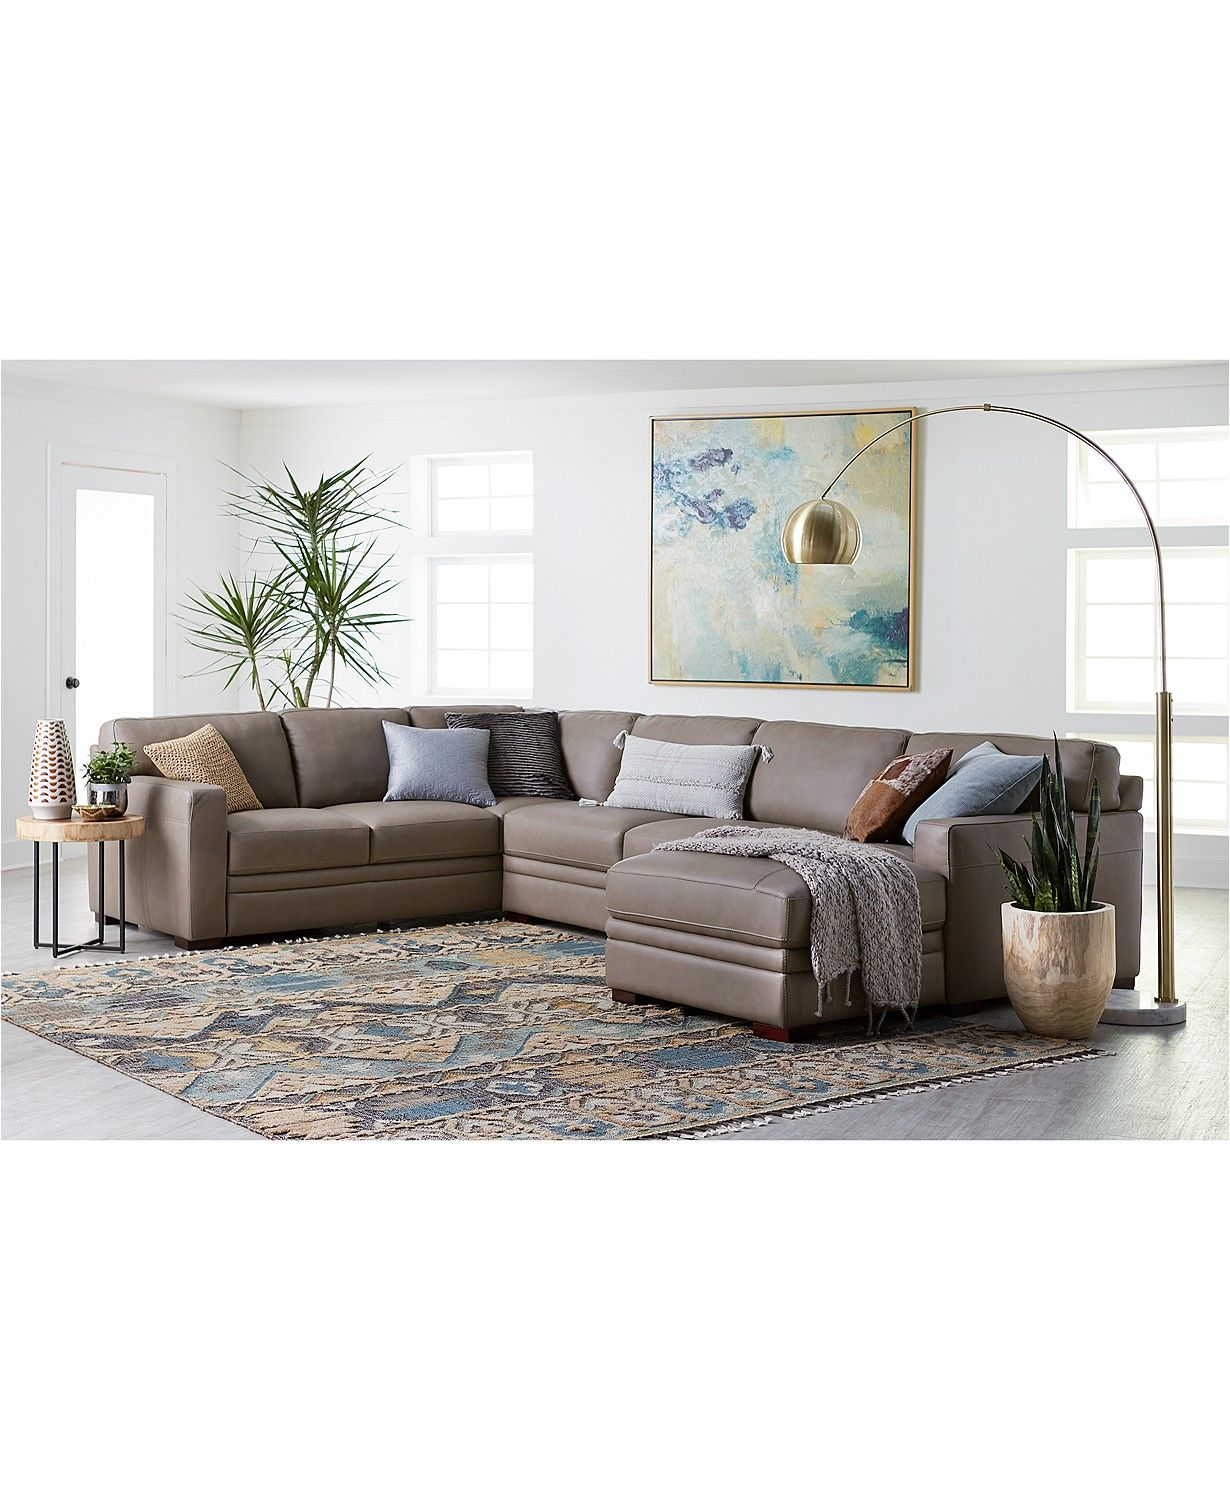 Furniture Avenell Leather Sectional And Sofa Collection Created For Macy S Reviews Furniture Macy S In 2021 Leather Couches Living Room Leather Sectional Living Room Sectional Living Room Decor